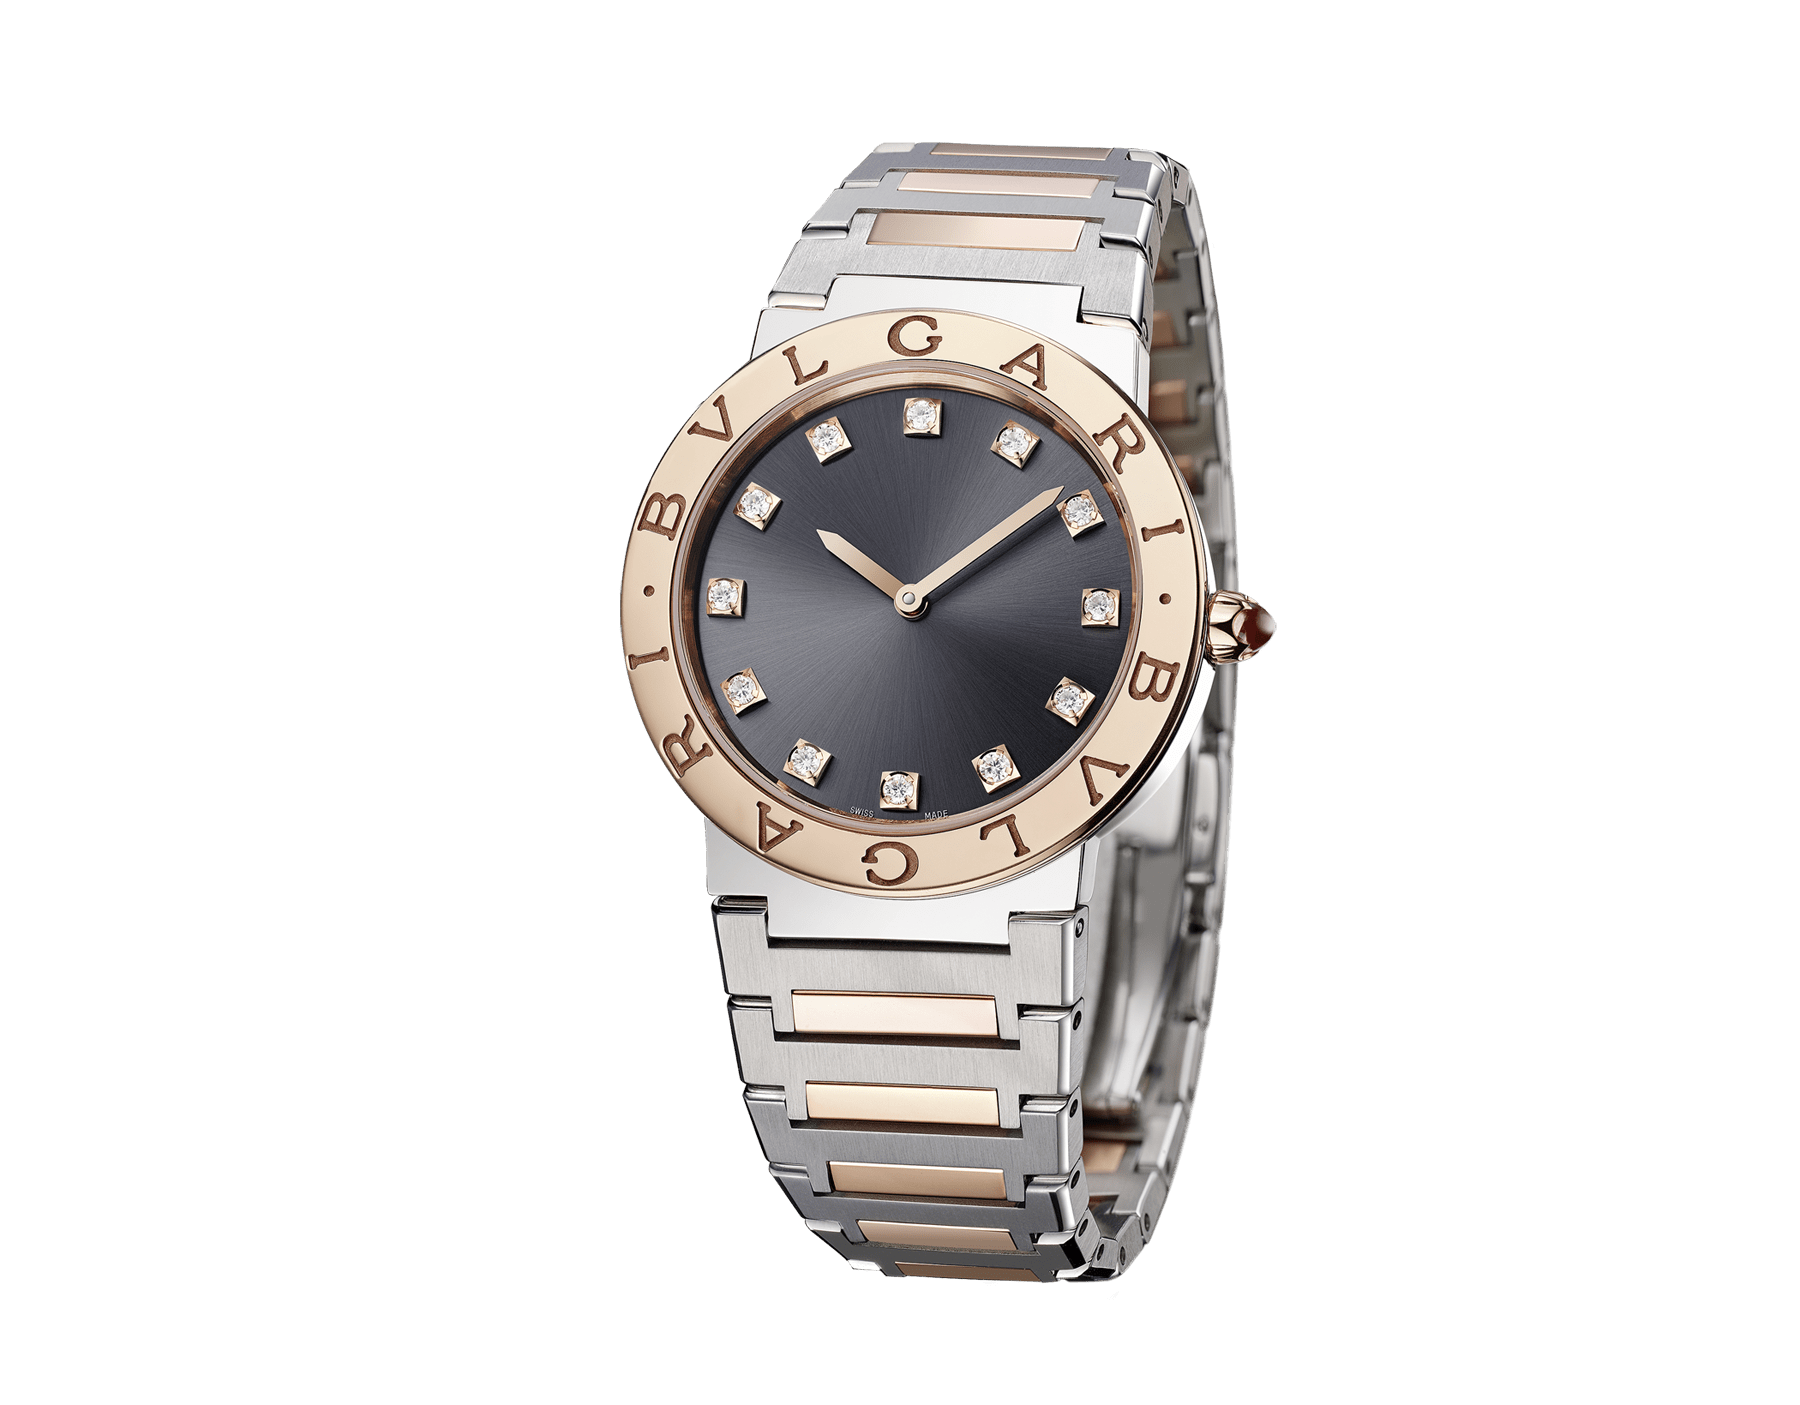 BVLGARI BVLGARI LADY watch with stainless steel case, 18 kt rose gold bezel engraved with double logo, grey lacquered dial, diamond indexes, and stainless steel and 18 kt rose gold bracelet. 103067 image 2